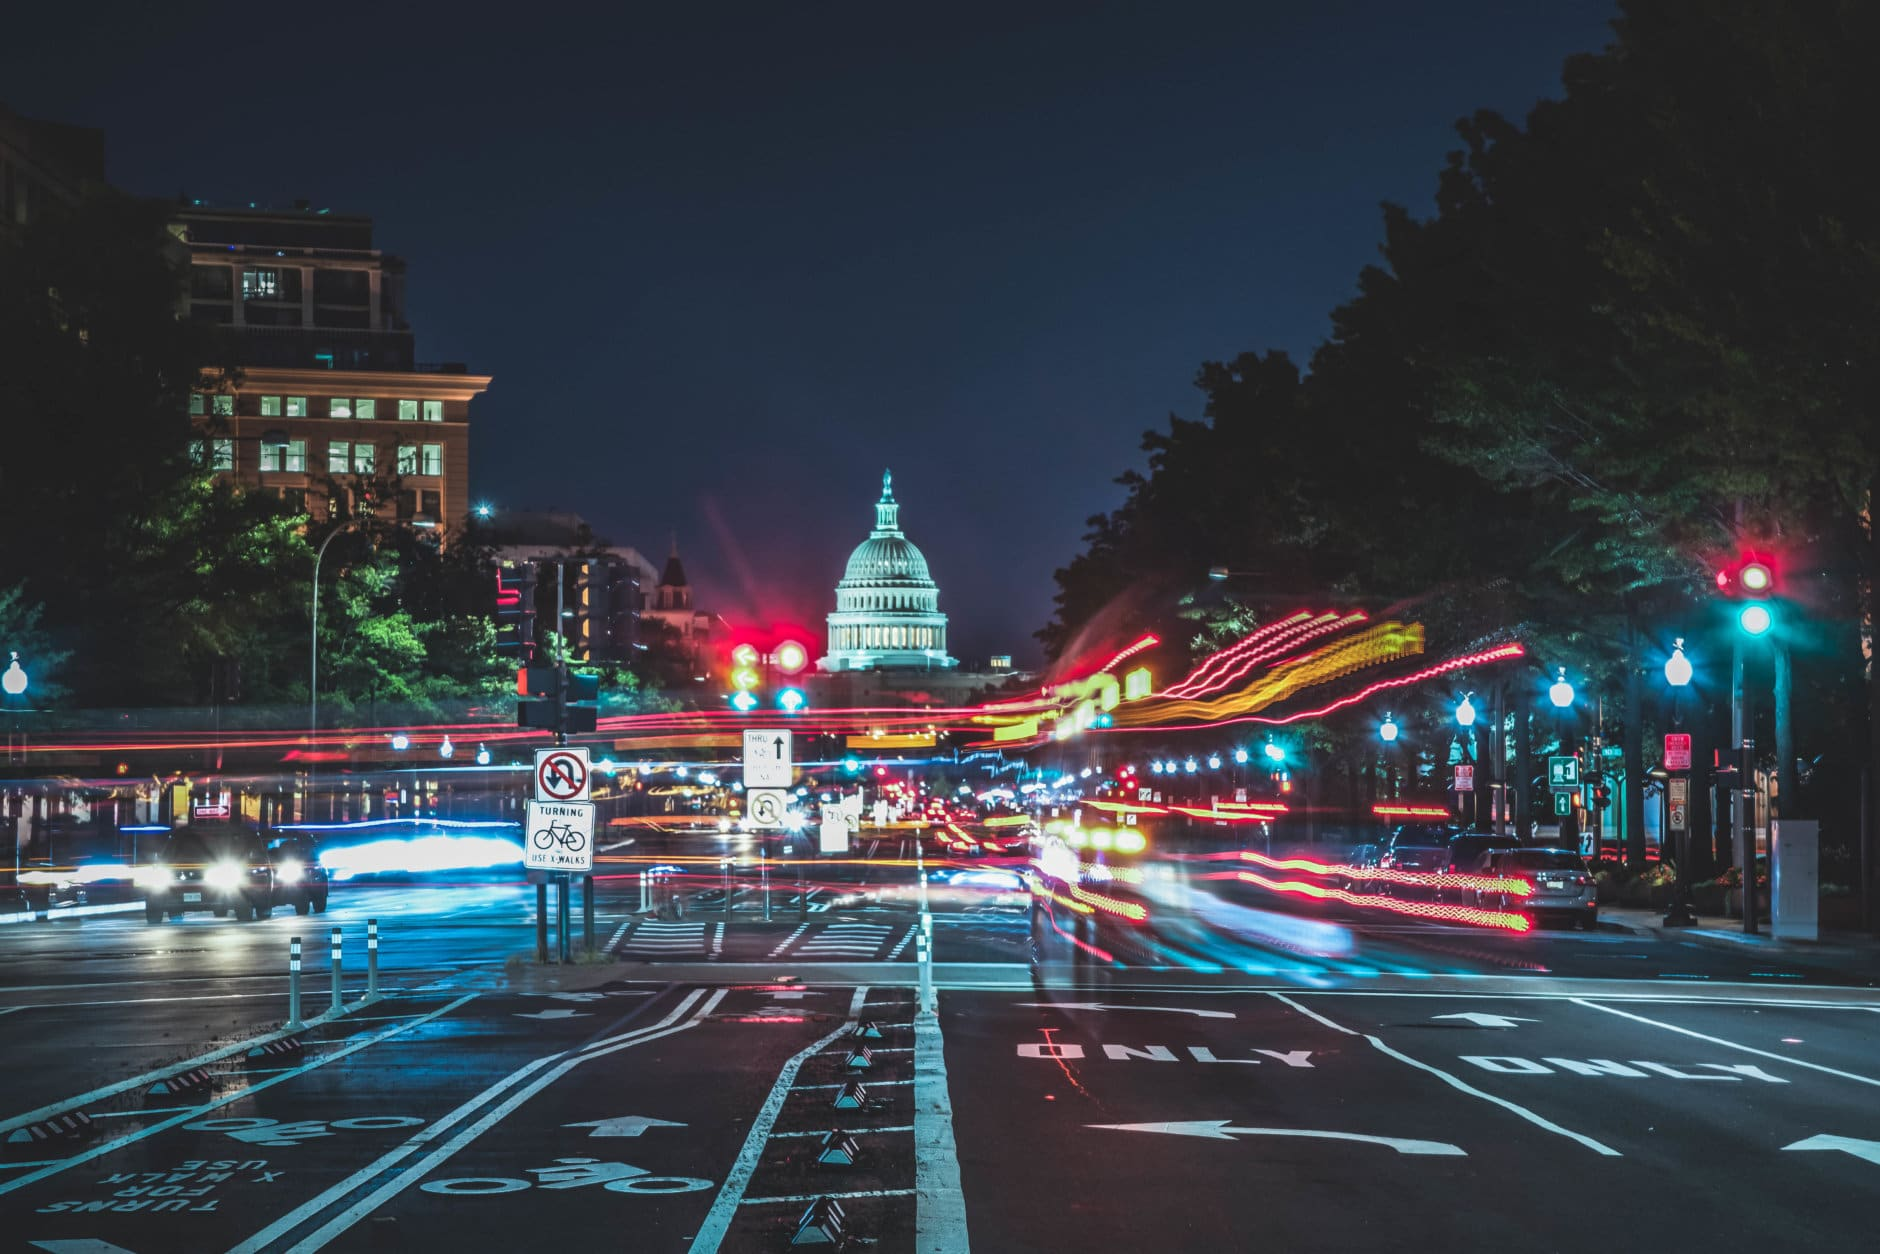 Here is the token nighttime long exposure shot of the U.S. Capital building in Washington D.C.